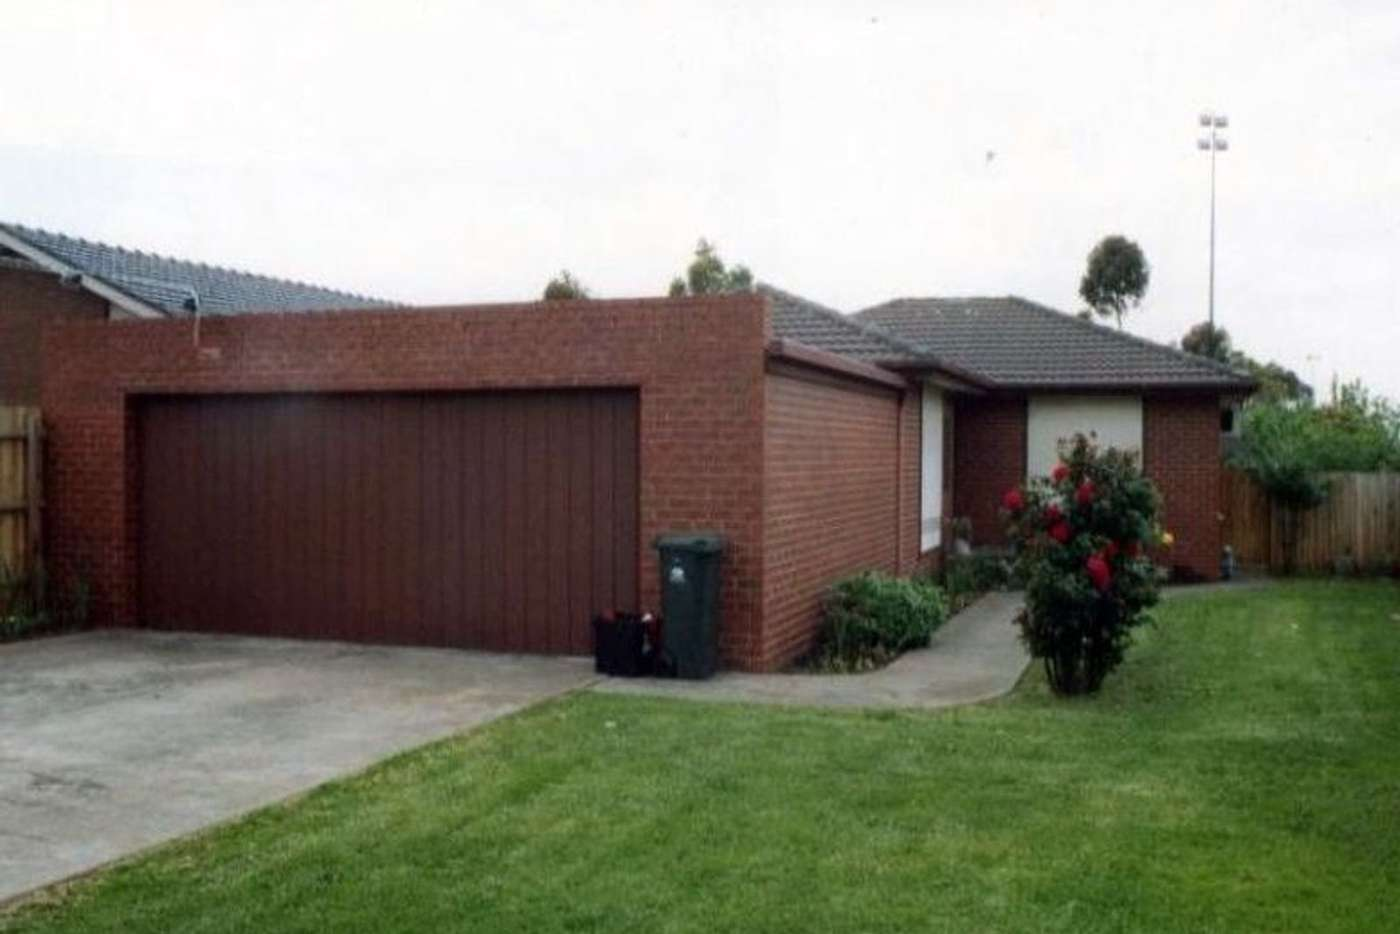 Main view of Homely house listing, 48 Tarella Drive, Keilor Downs VIC 3038